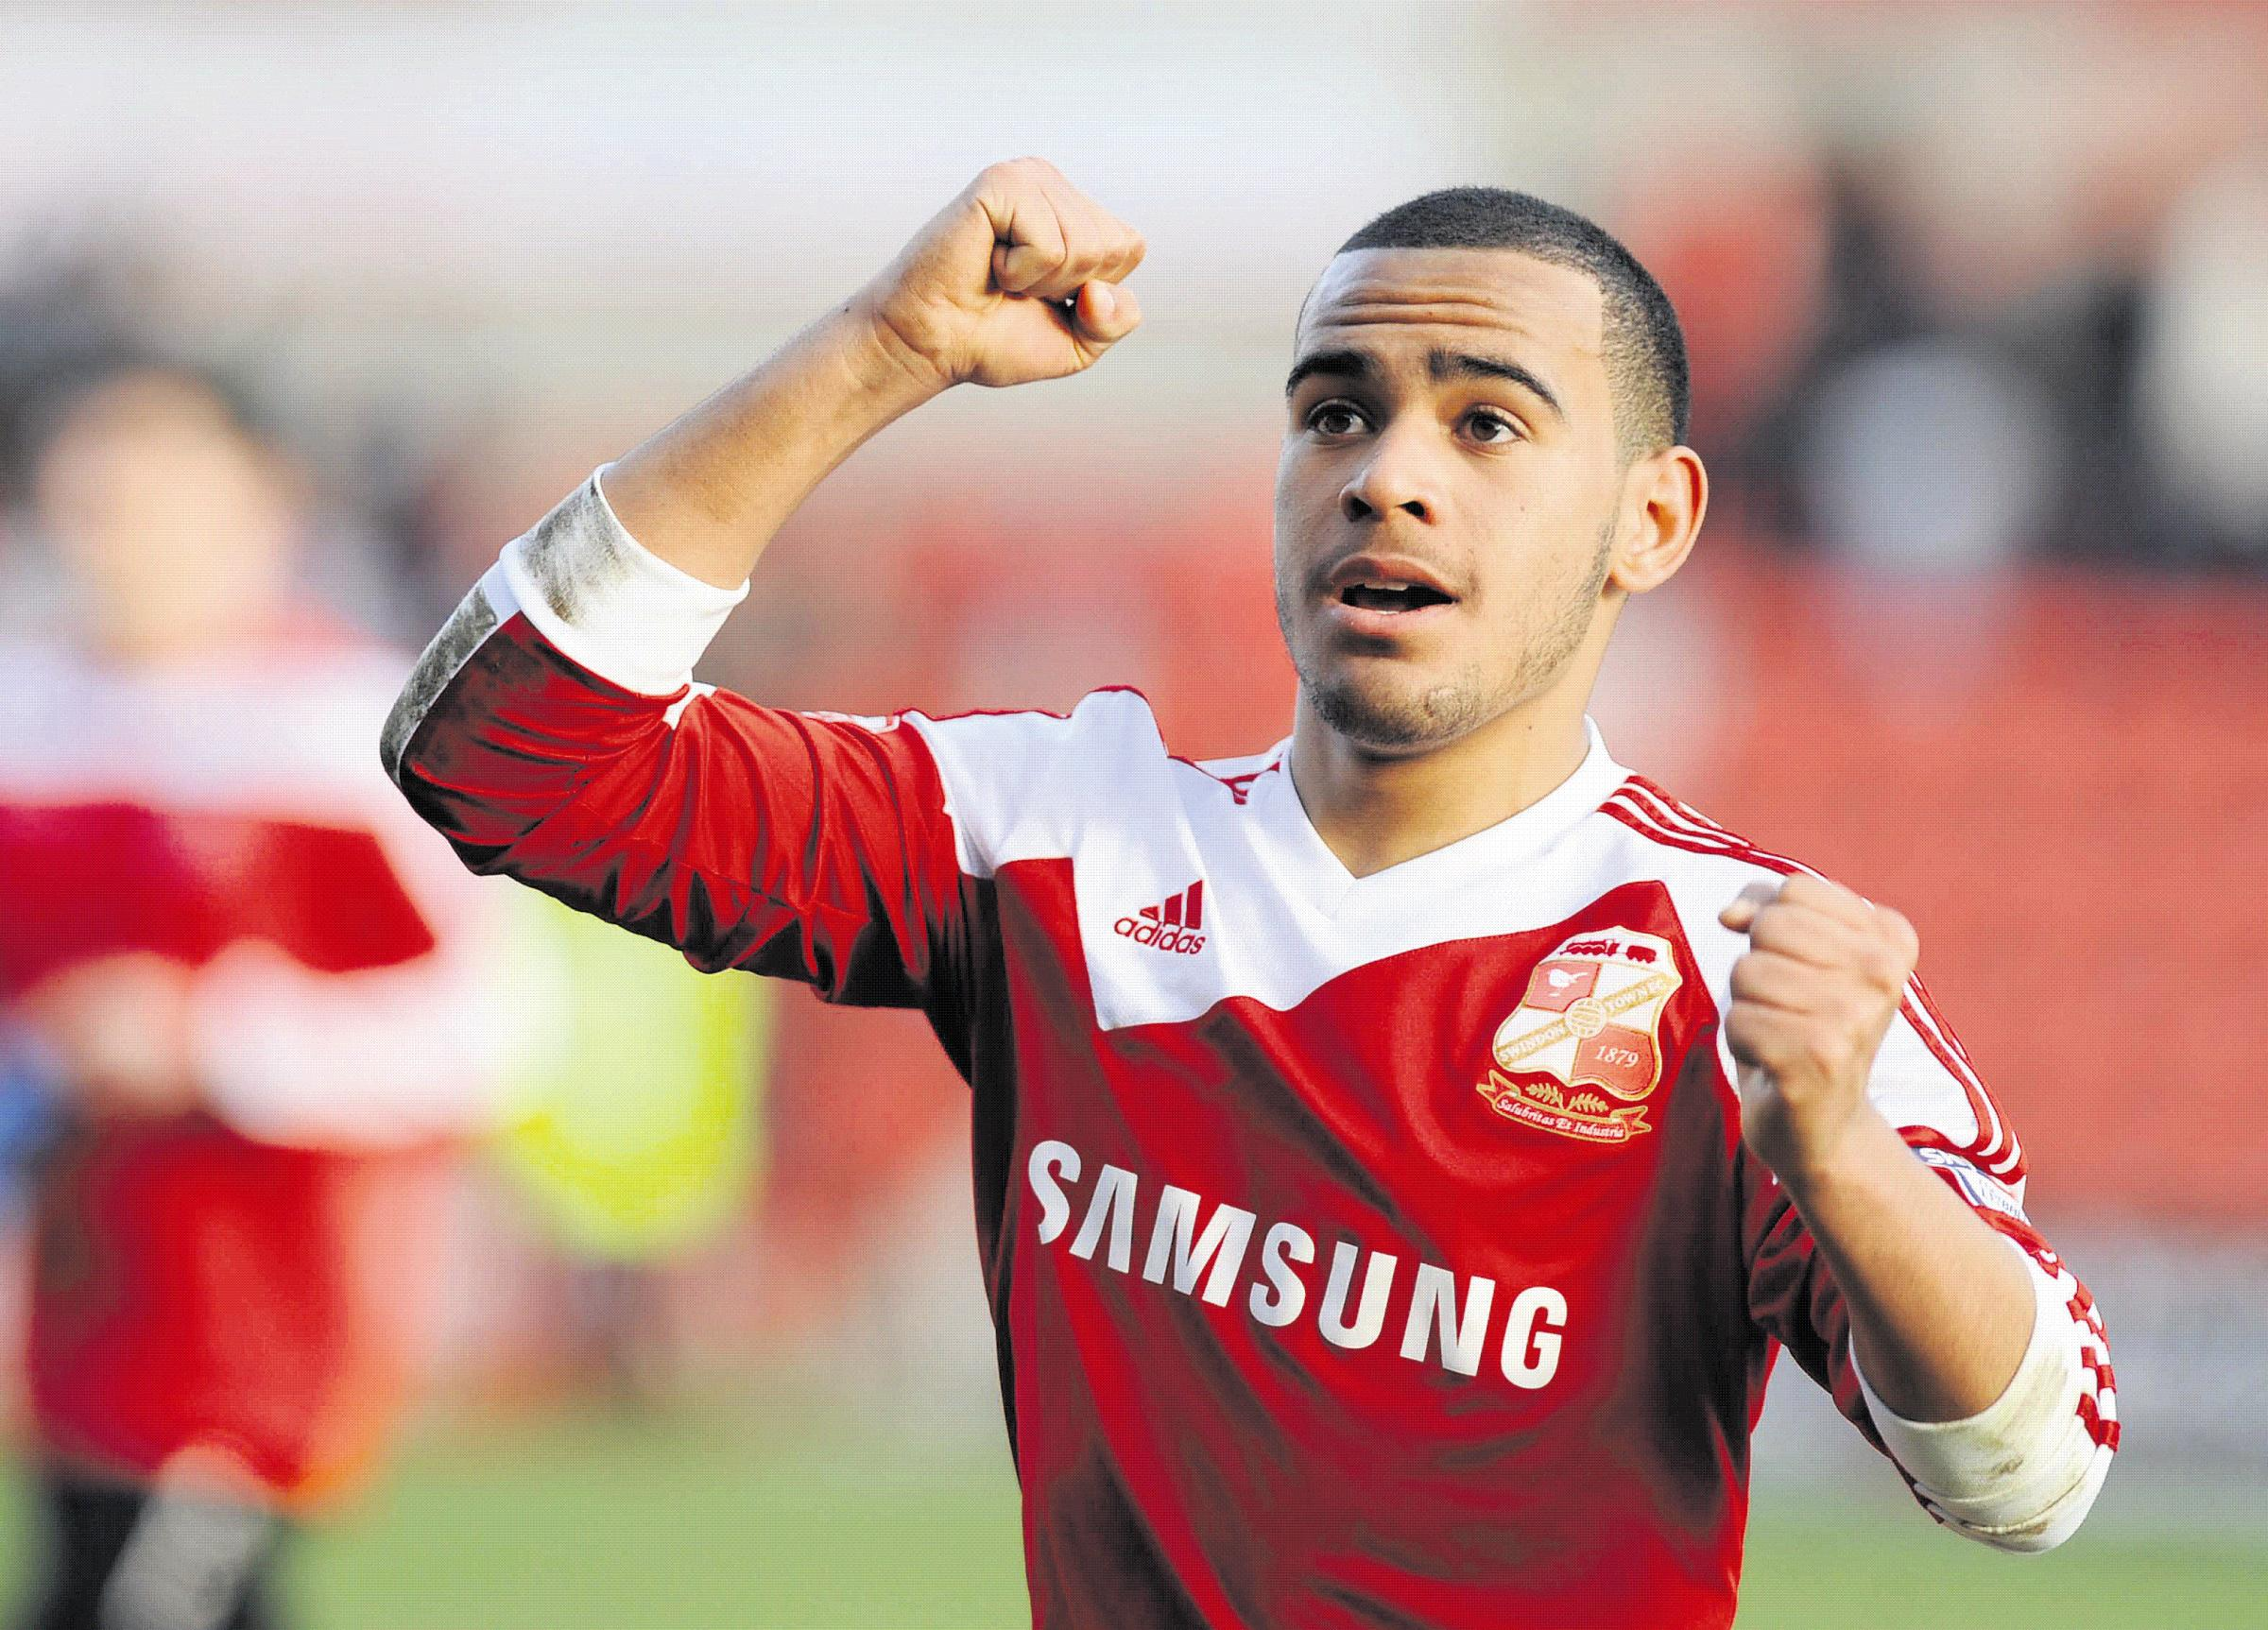 Louis Thompson is focused on life at Swindon Town despite reported interested from elsewhere